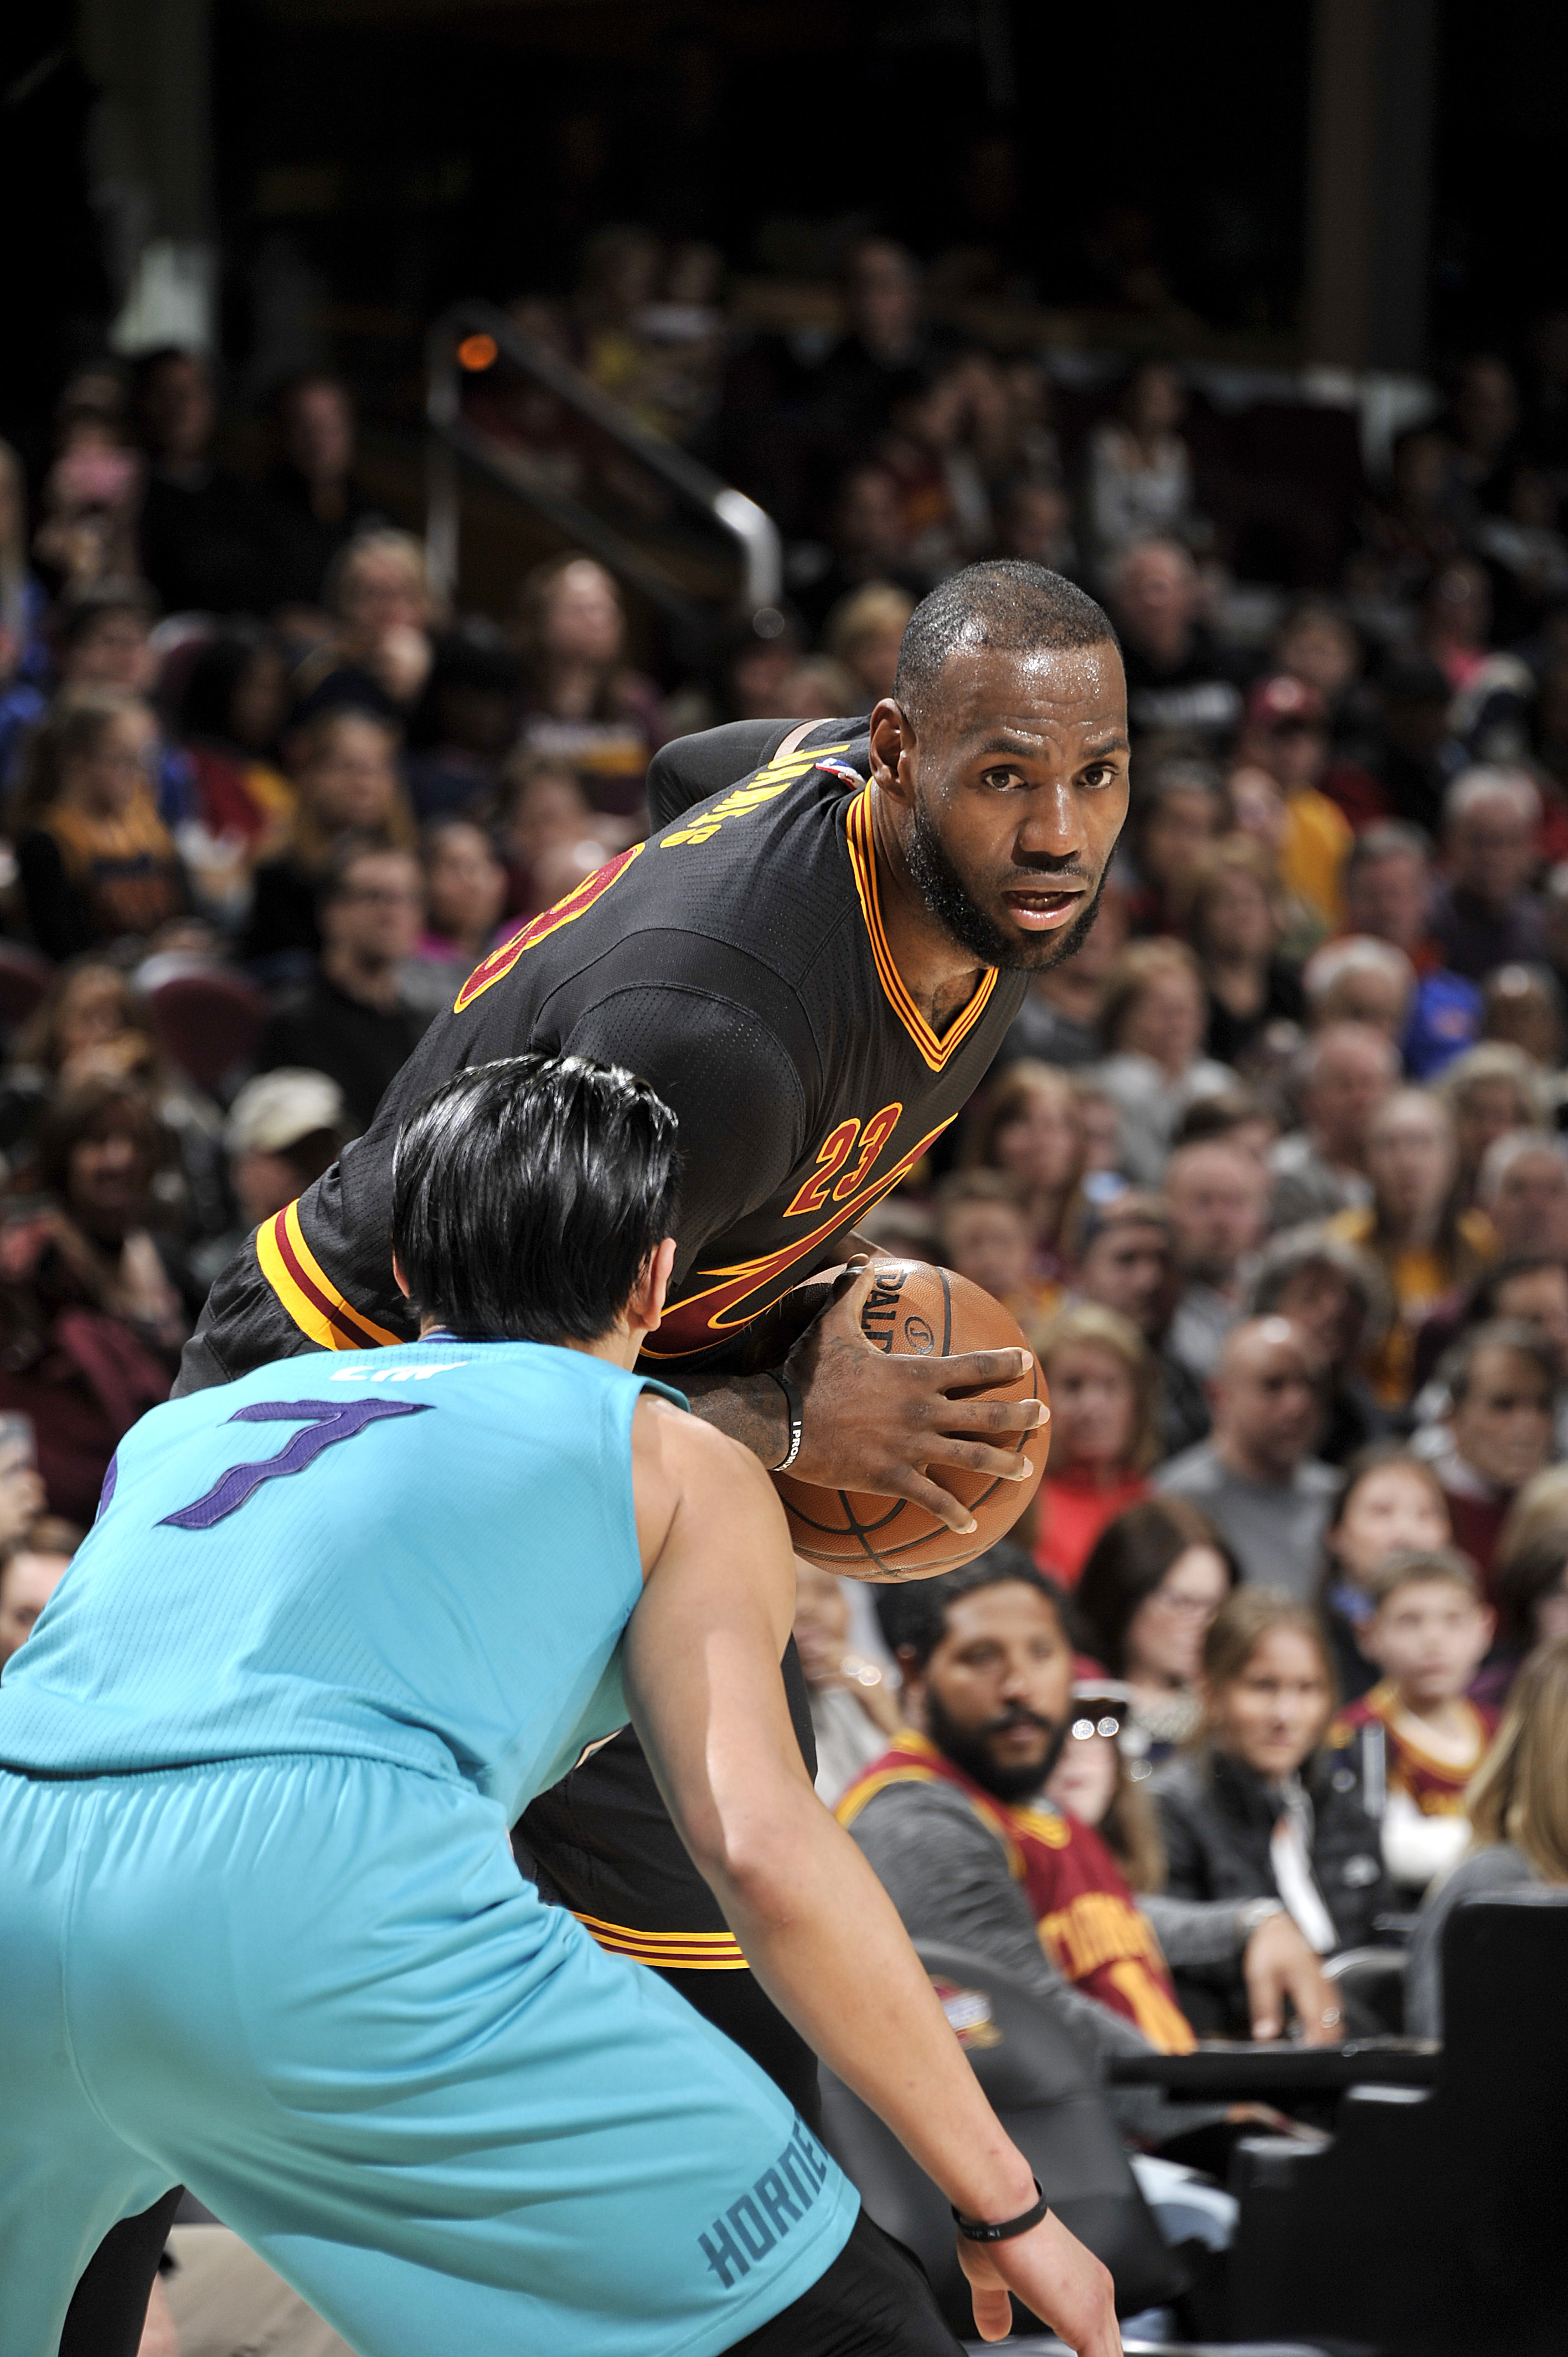 CLEVELAND, OH - APRIL 3: LeBron James #23 of the Cleveland Cavaliers handles the ball during the game against Jeremy Lin #7 of the Charlotte Hornets on April 3, 2016 at Quicken Loans Arena in Cleveland, Ohio.  (Photo by David Liam Kyle/NBAE via Getty Imag